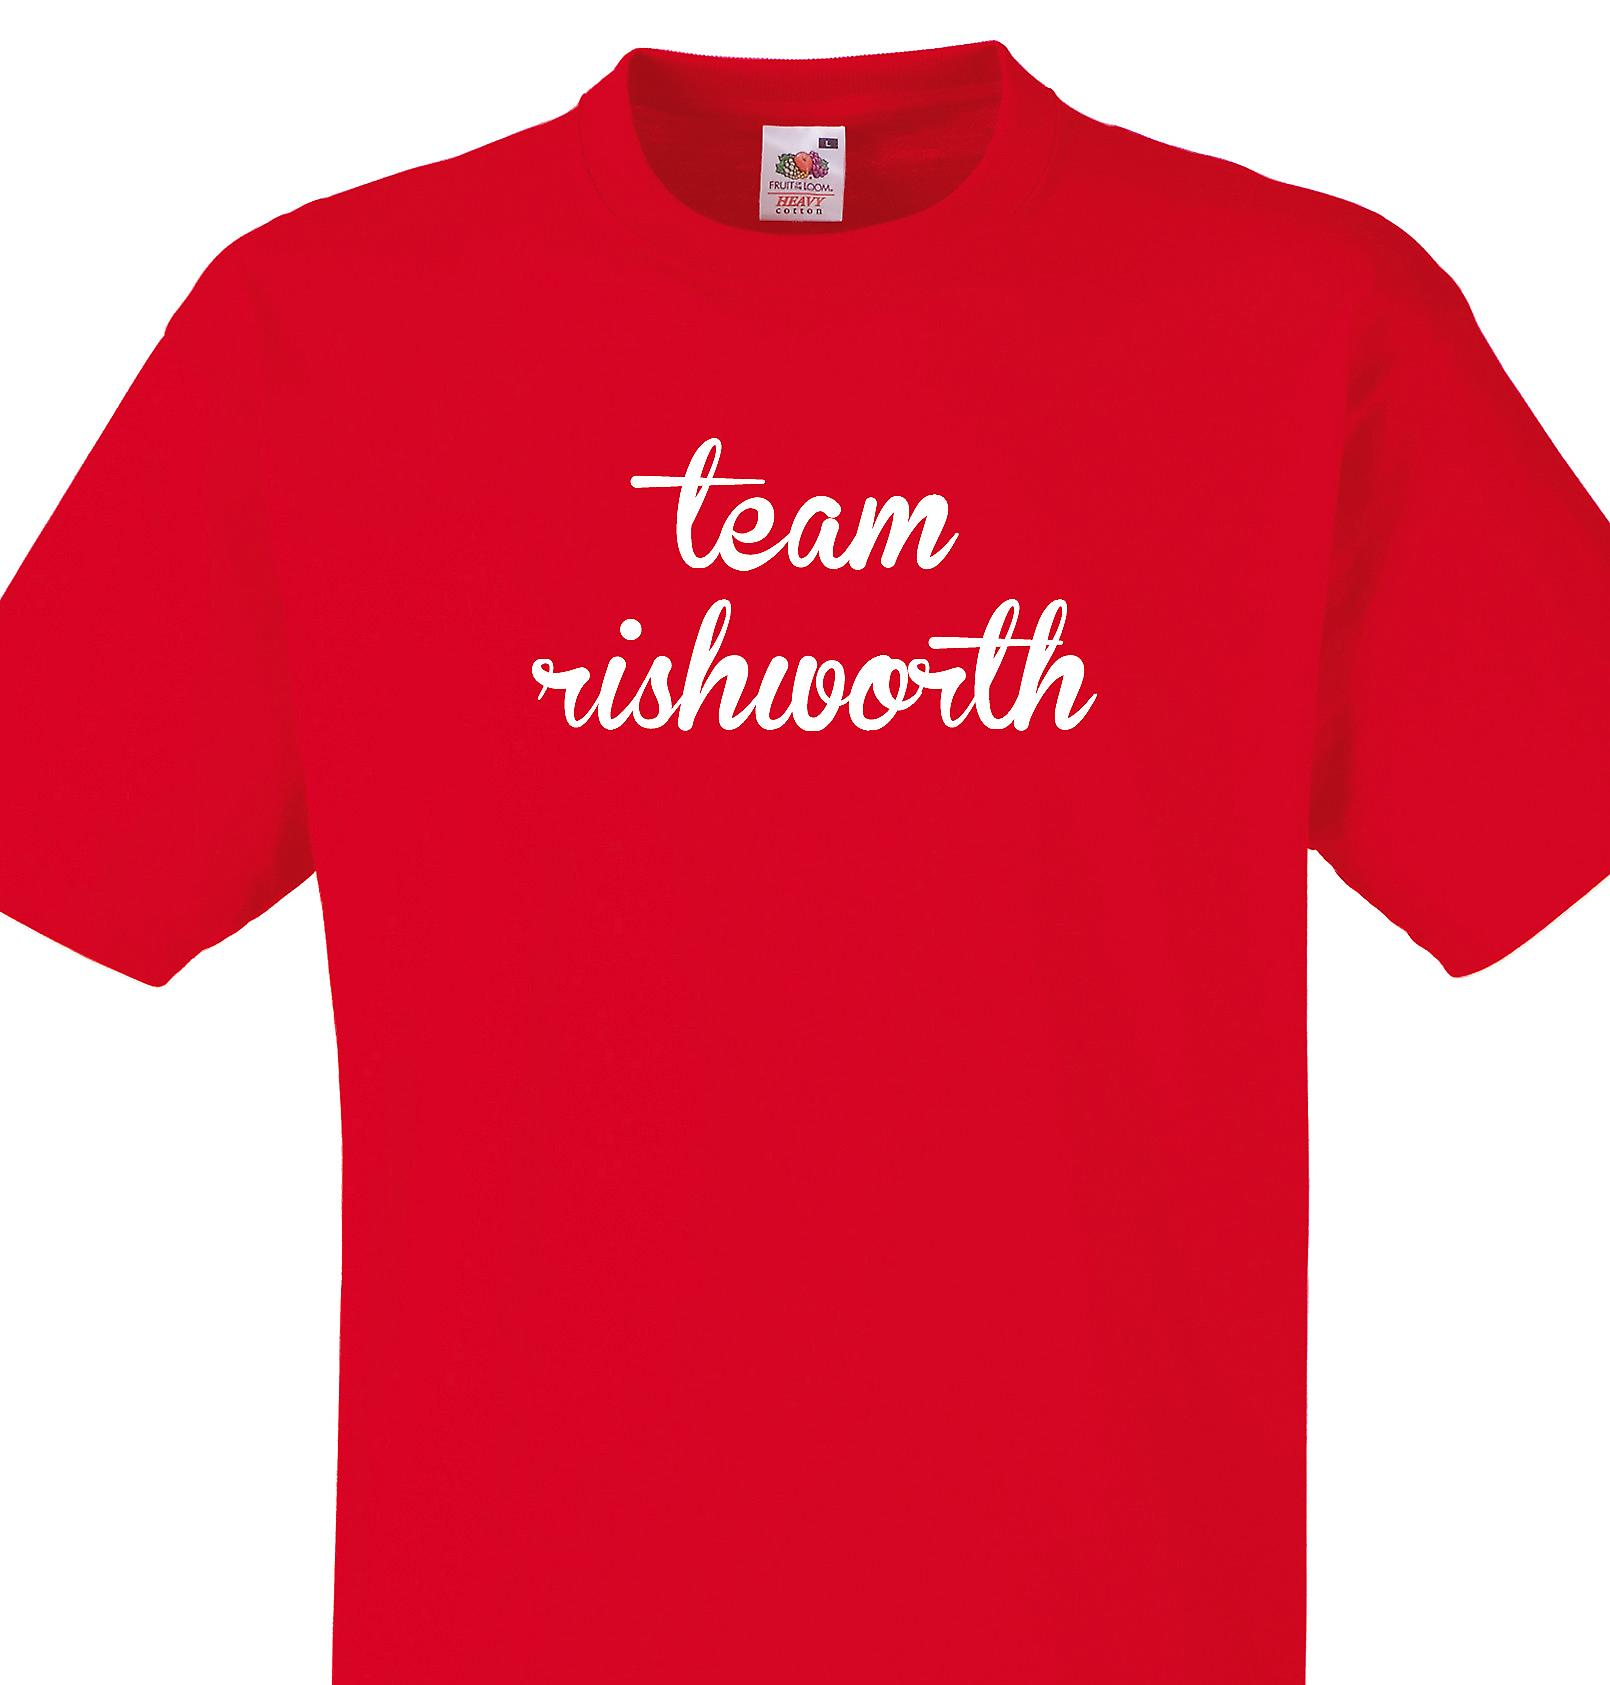 Team Rishworth Red T shirt